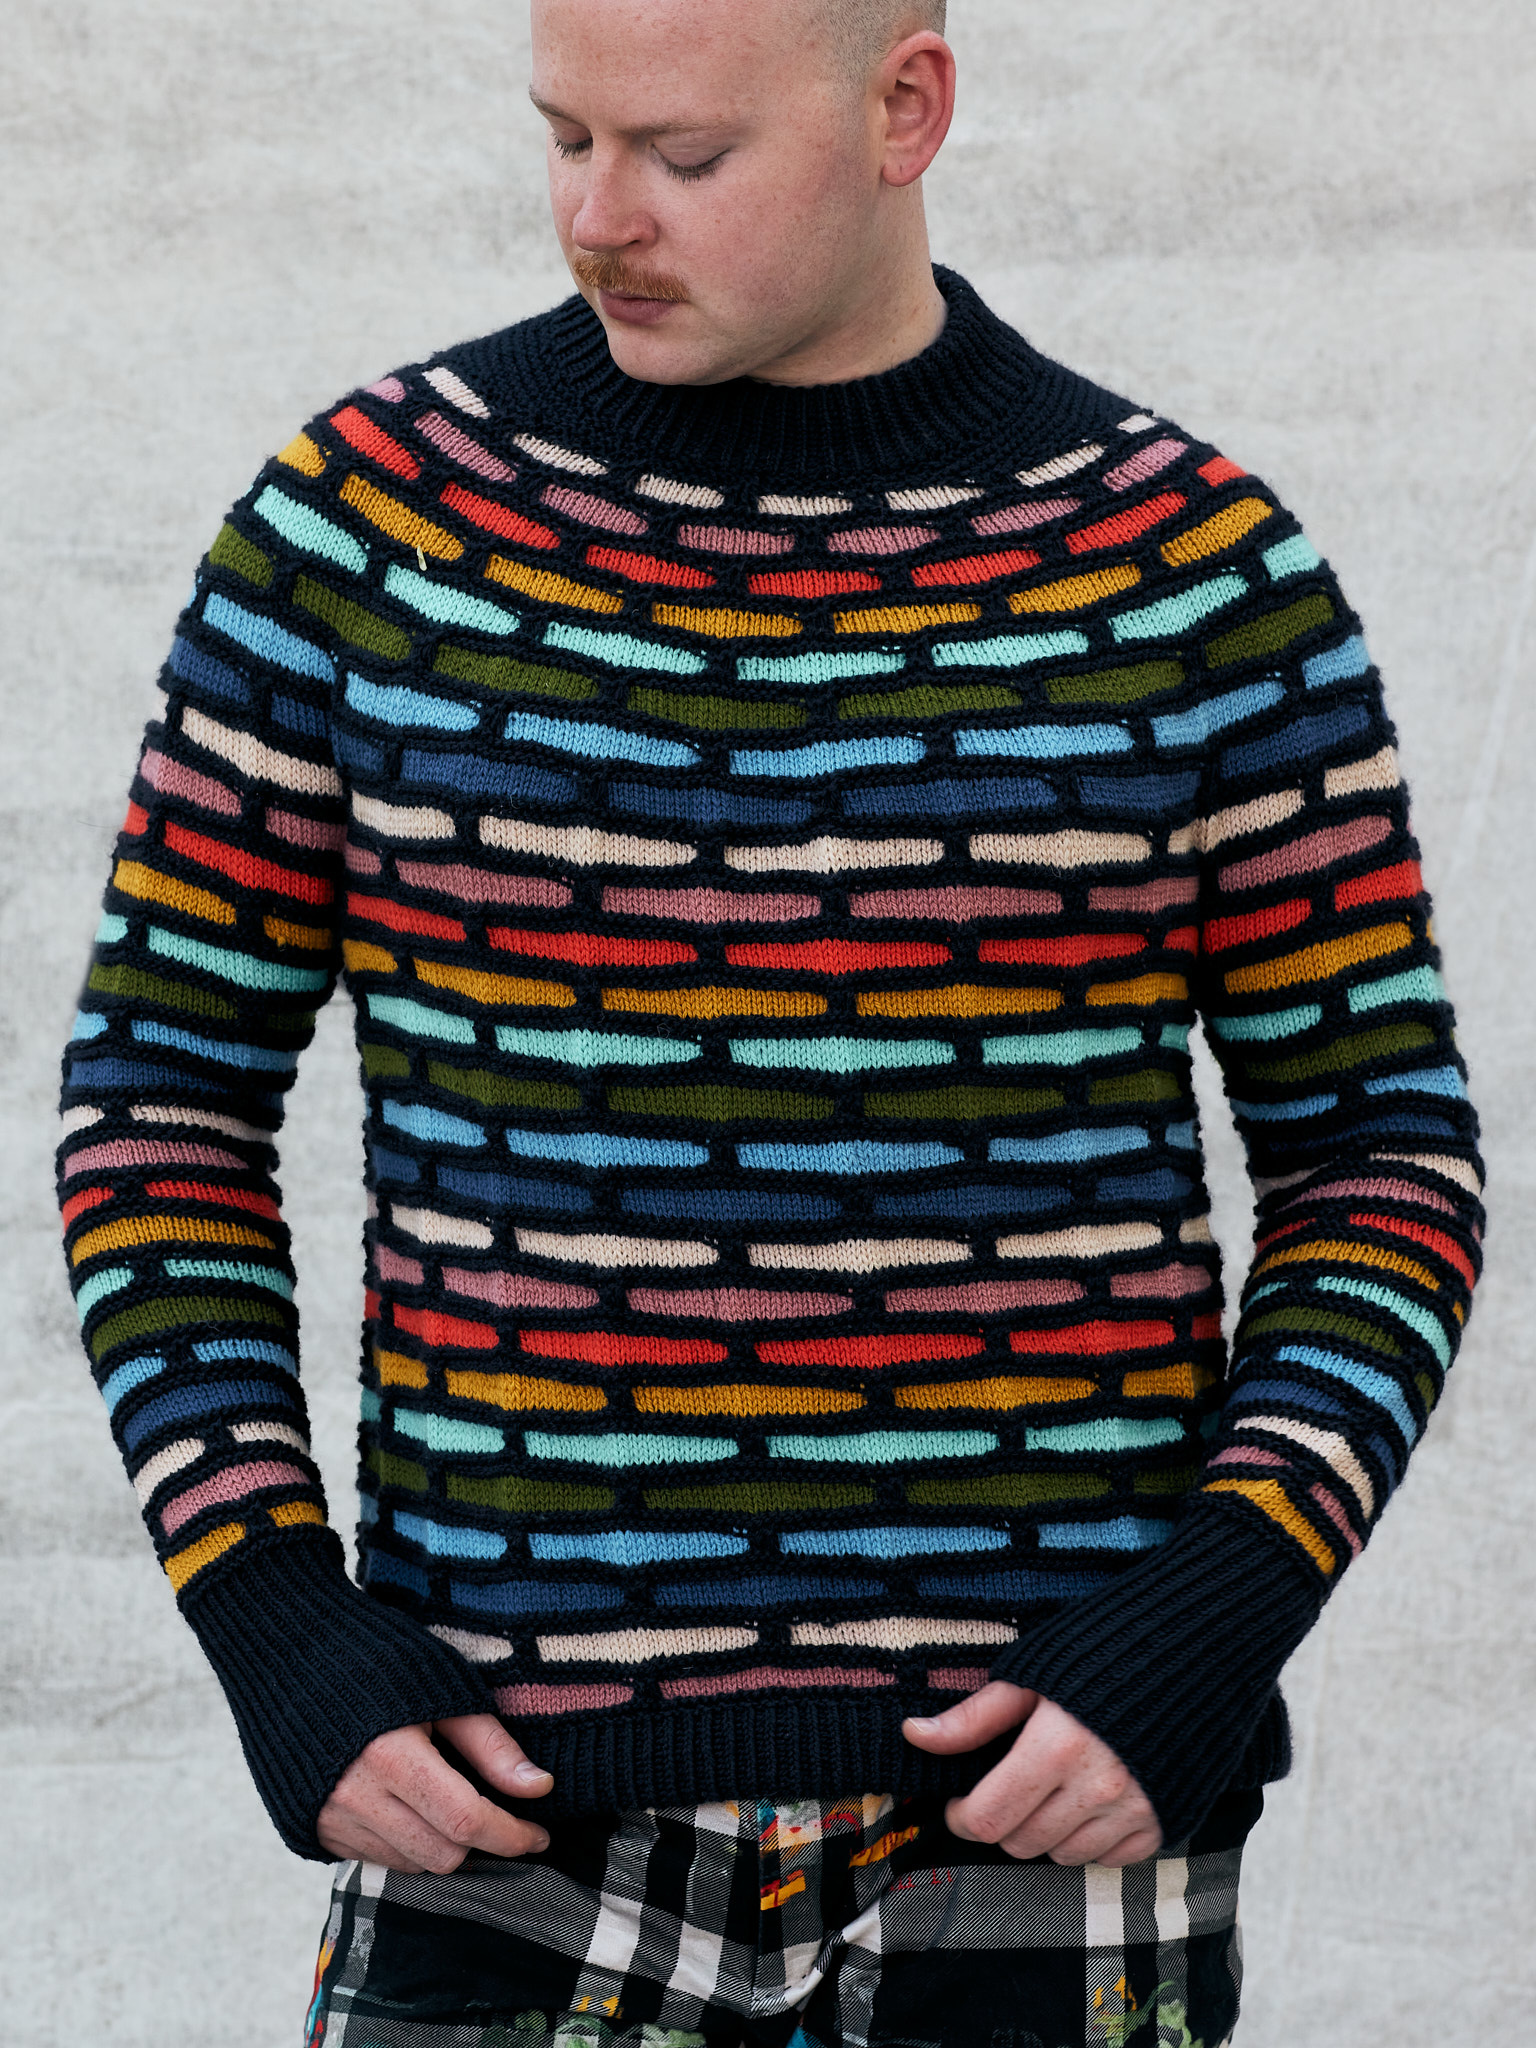 Westknits WK PAINTING BRICKS SWEATER CONTRAST COLOUR - KIT 7